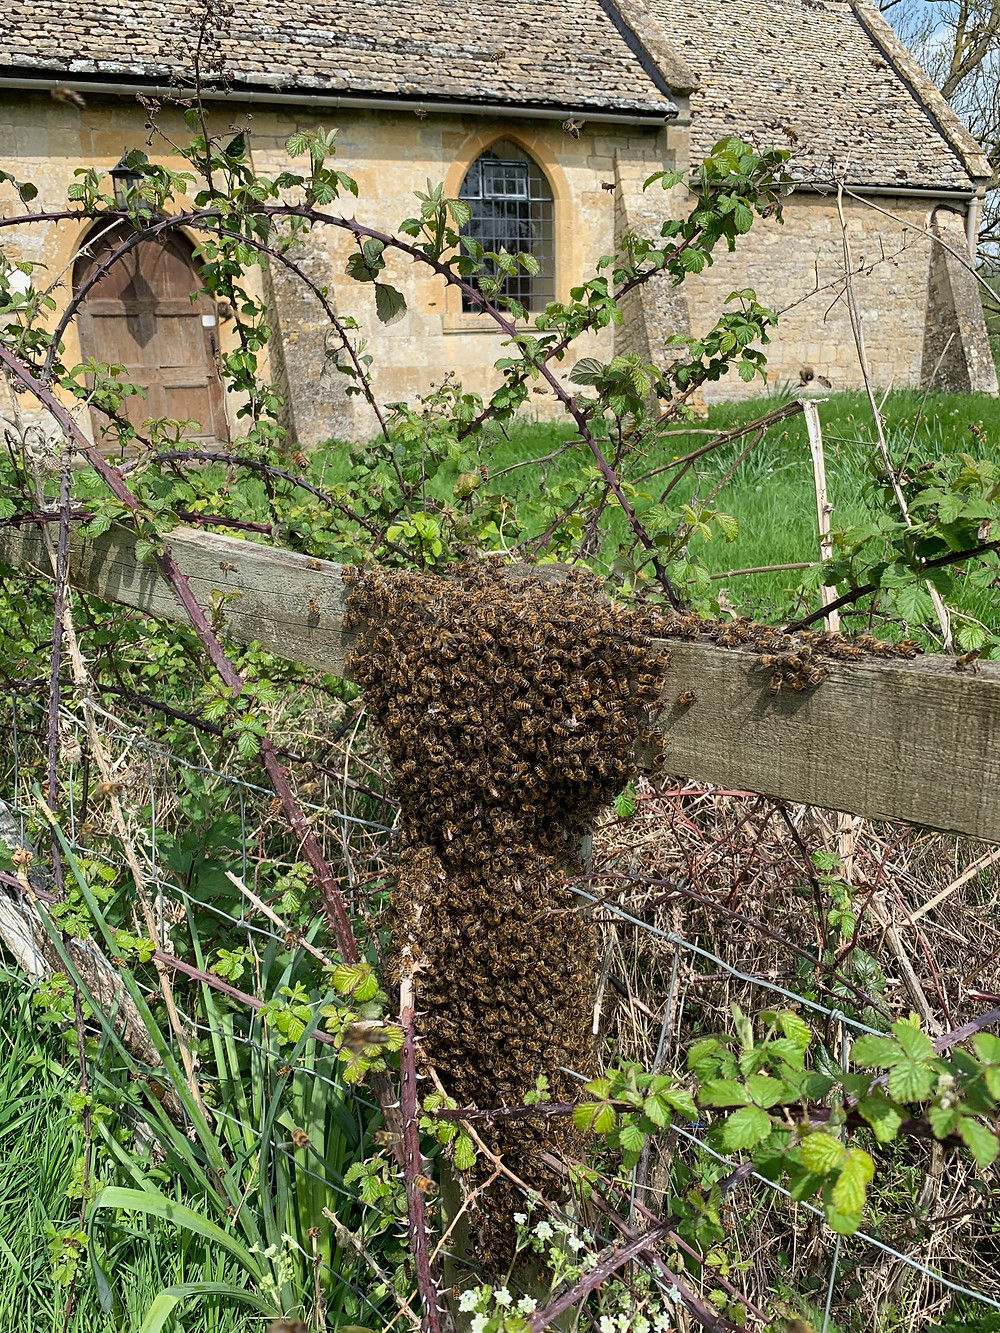 A swarm of honeybees gathered on a fence post before moving to their new home